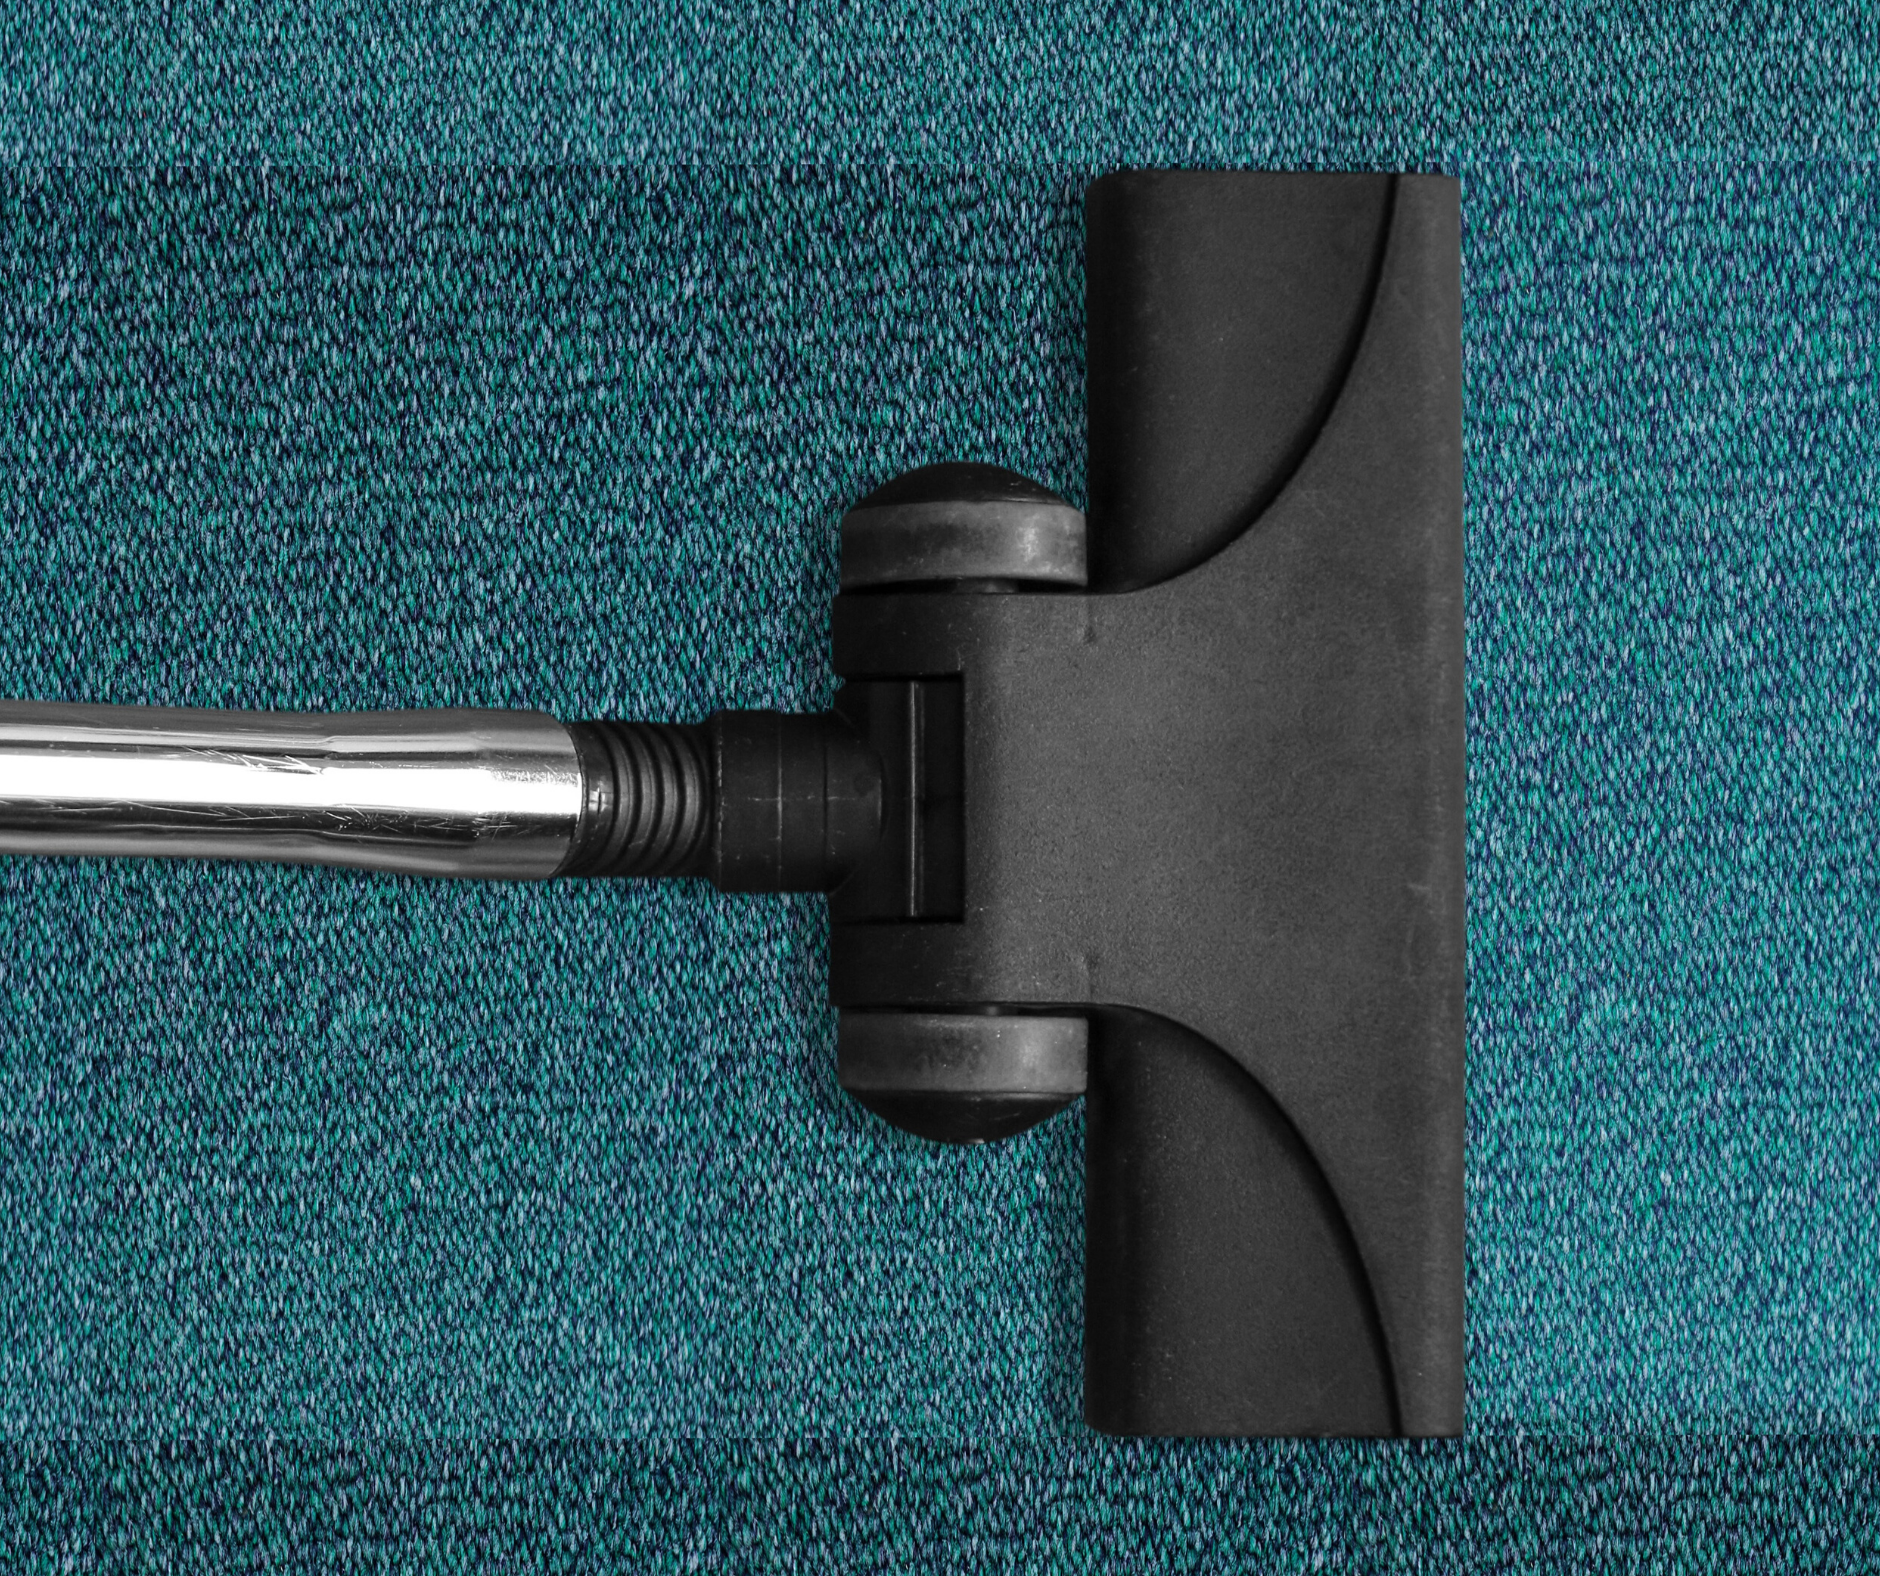 a hoover head on a teal carpet